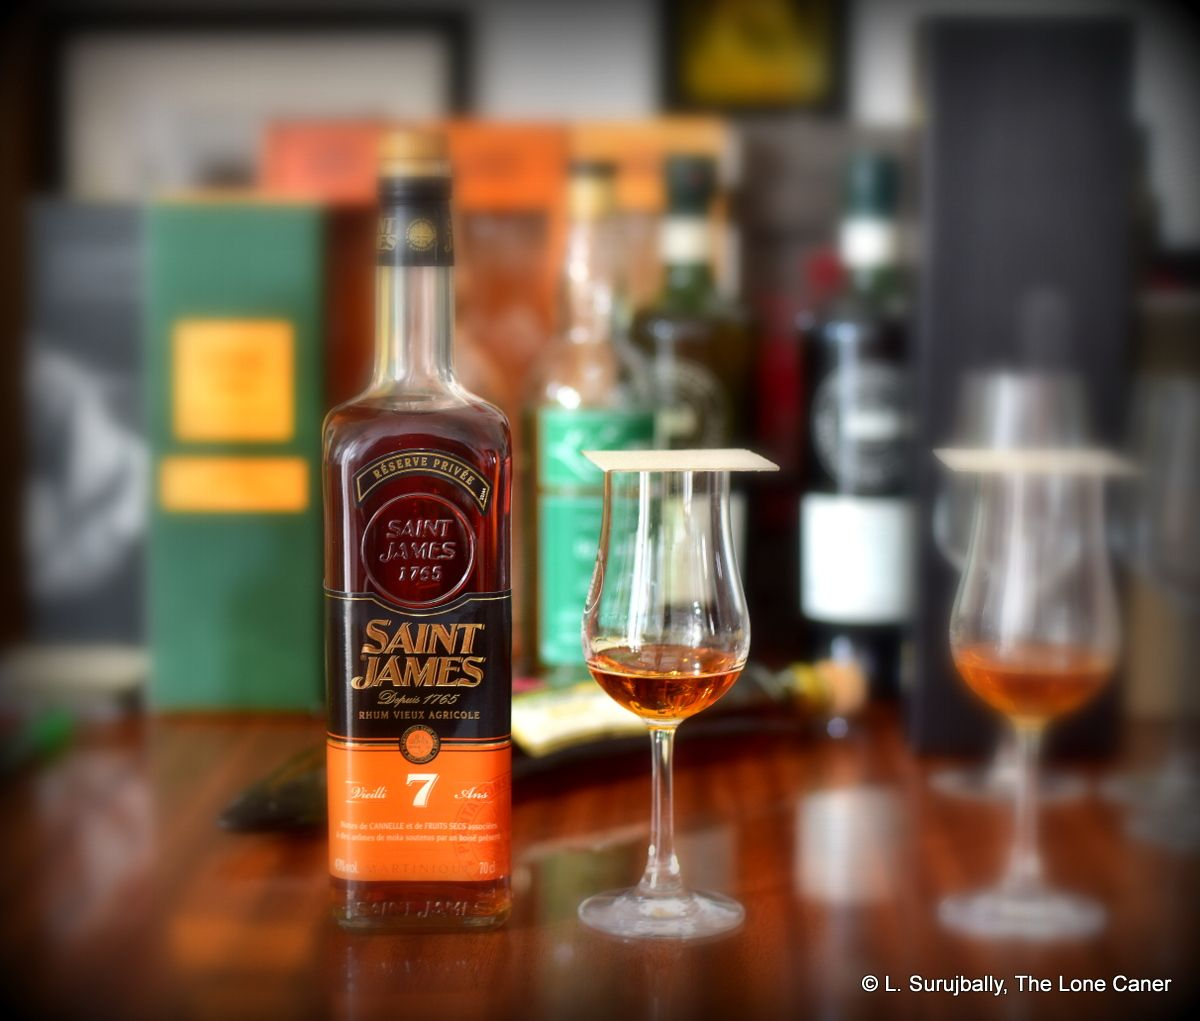 Saint James Rhum Vieux Agricole 7 Year Old Review in